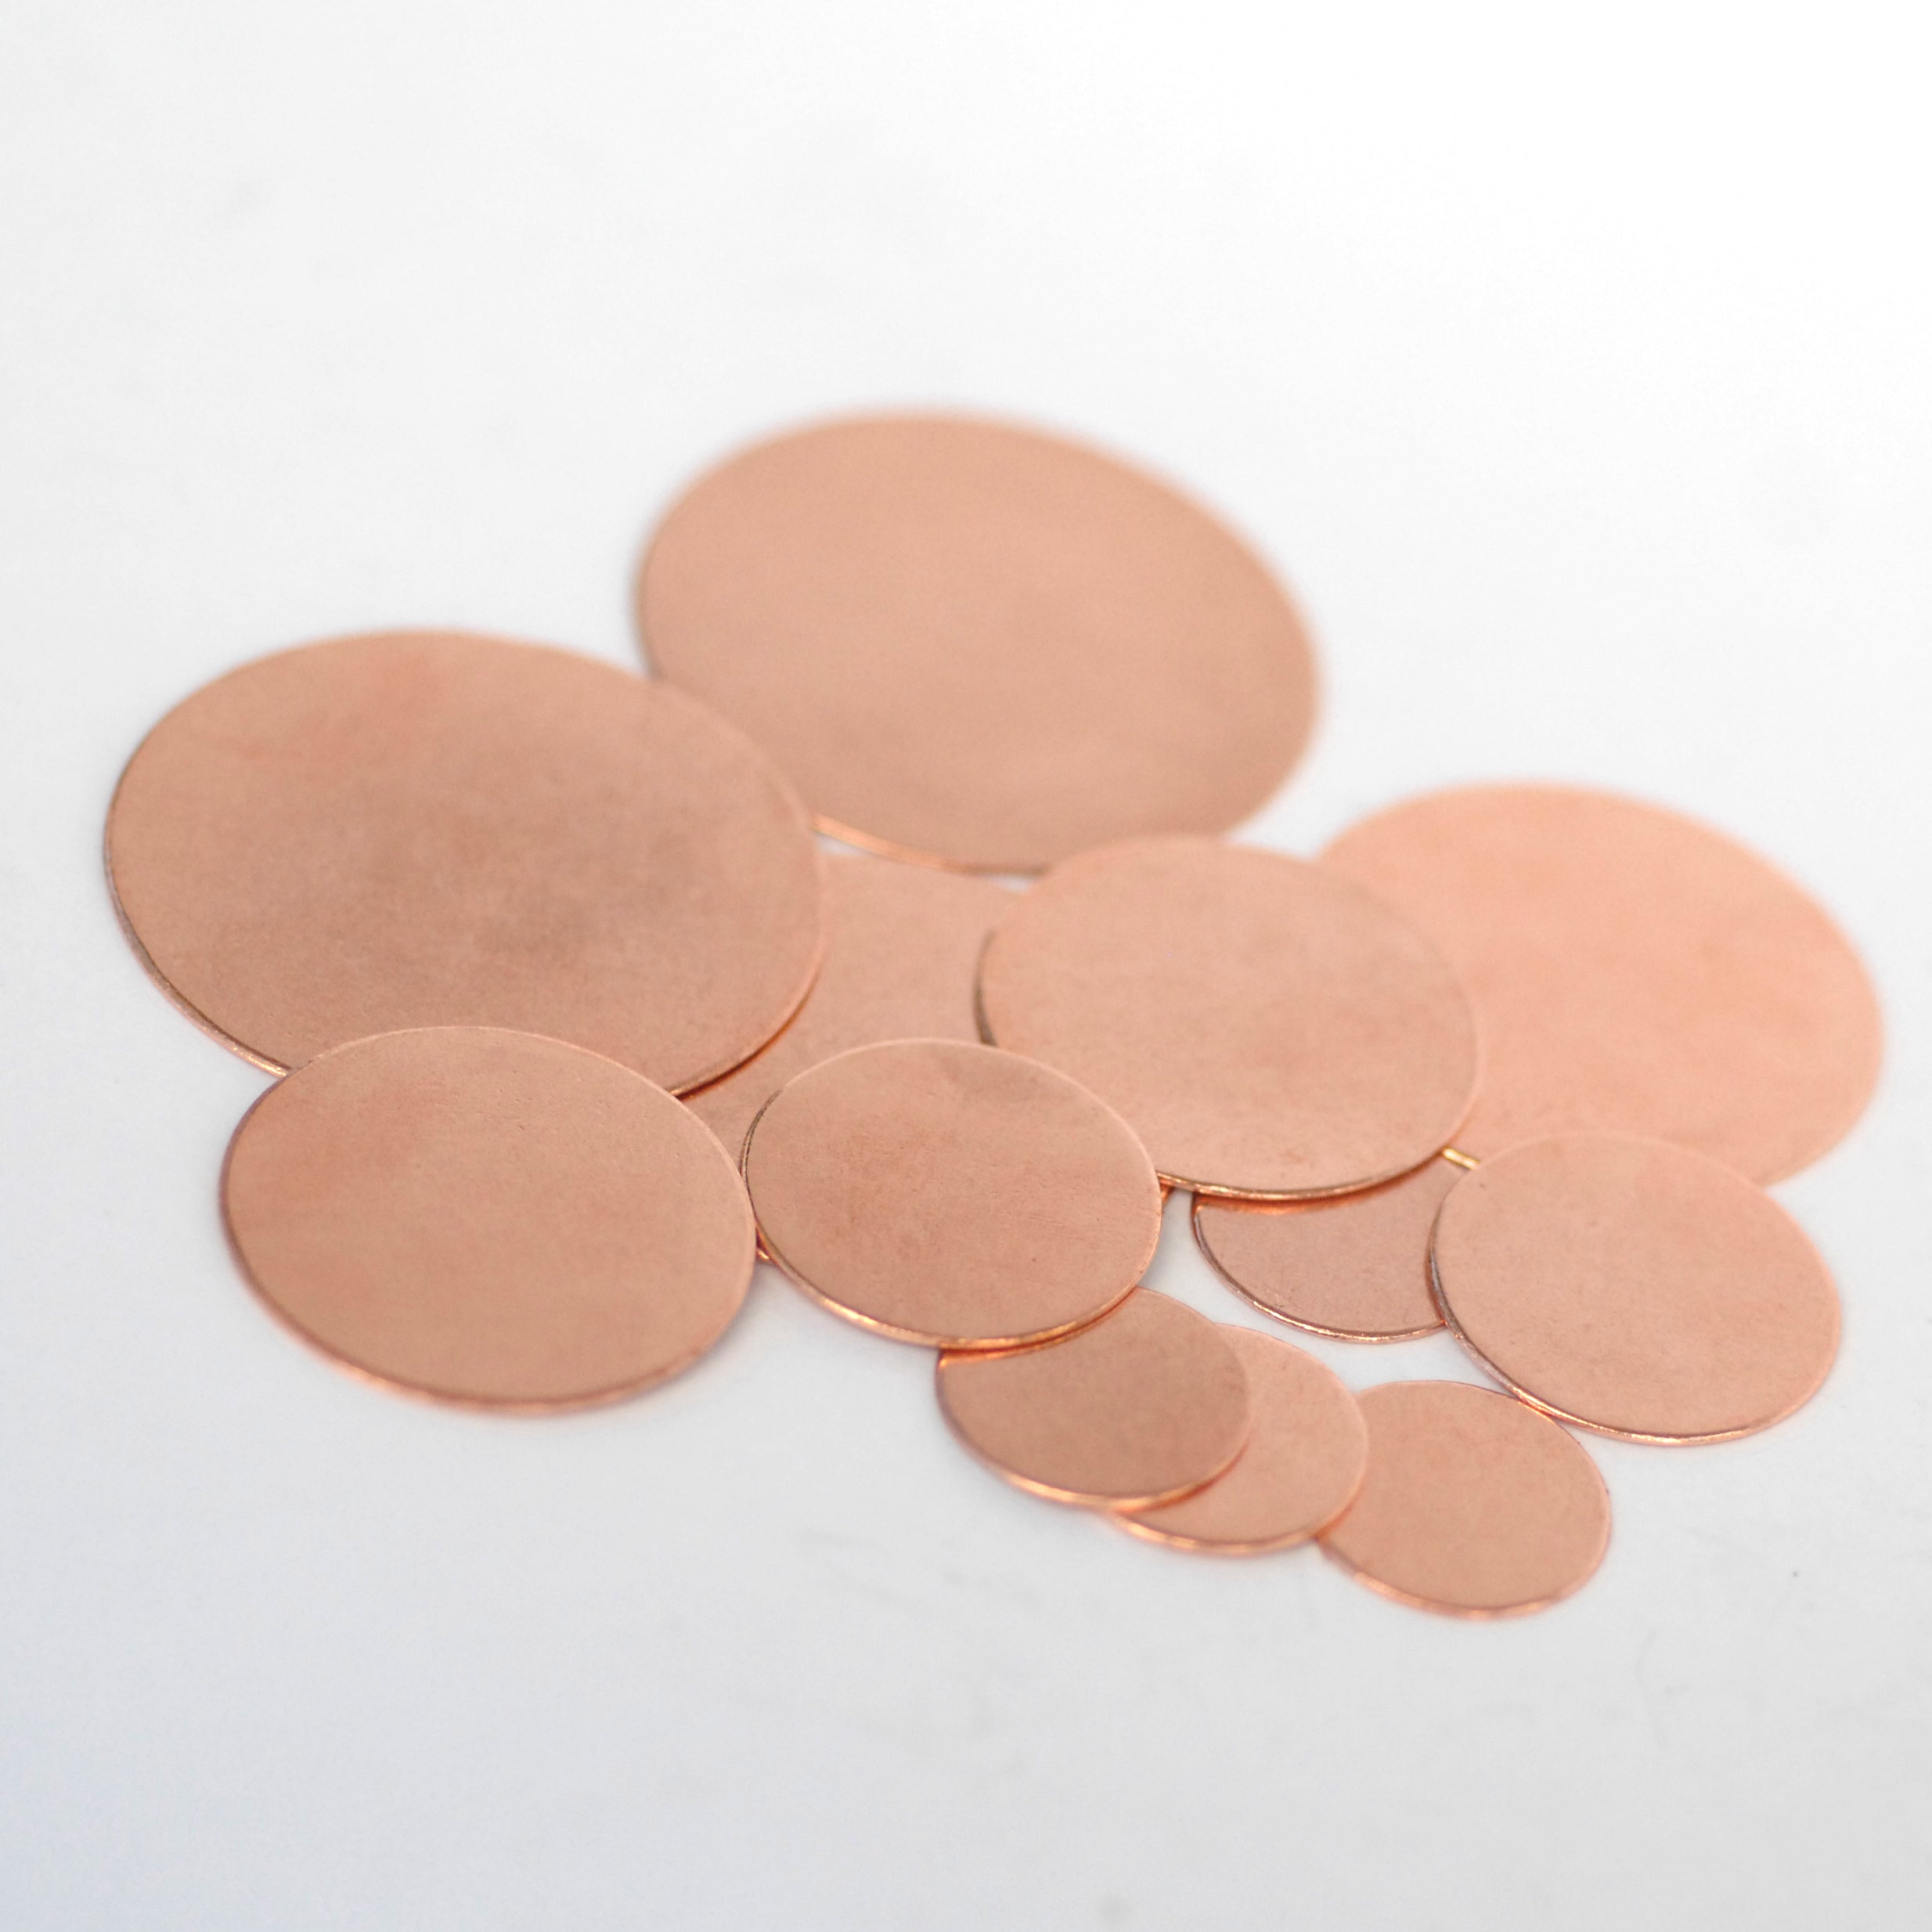 22mm Disc Blank 22G Cutout, Enameling Stamping Texturing Blanks - Jewelry Supplies - 8 Pieces